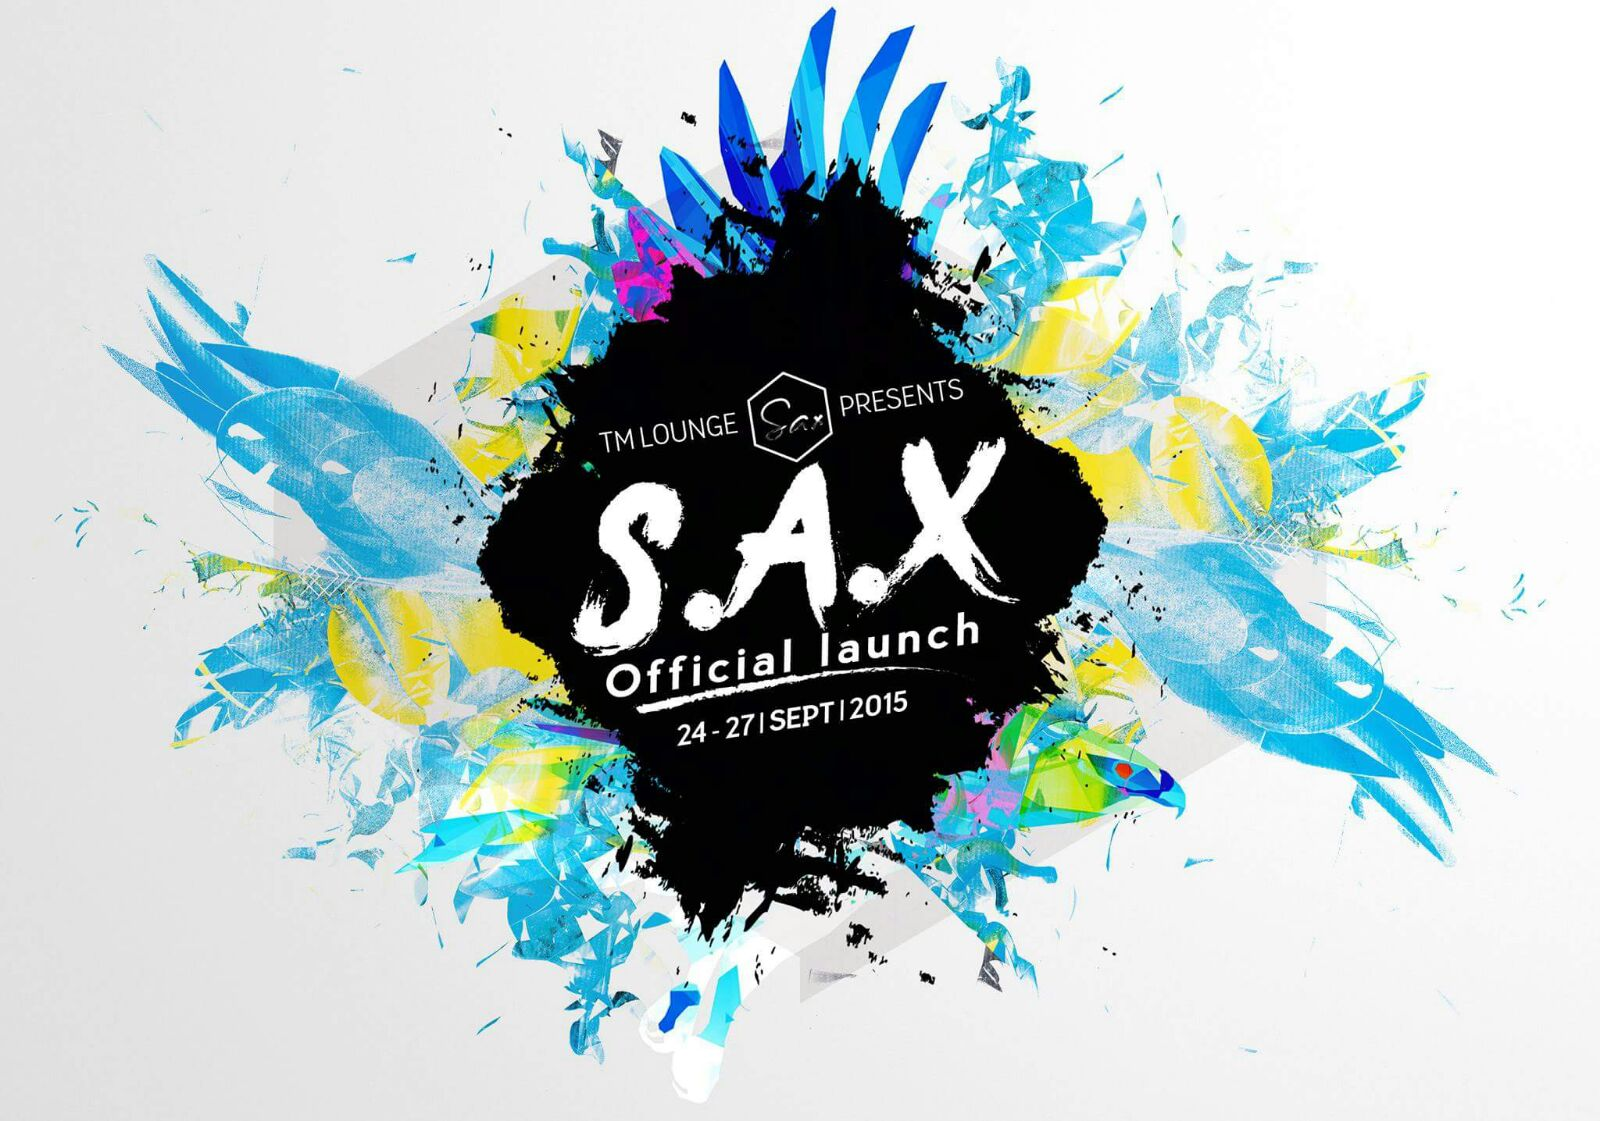 S.A.X Official Launch At TM Lounge